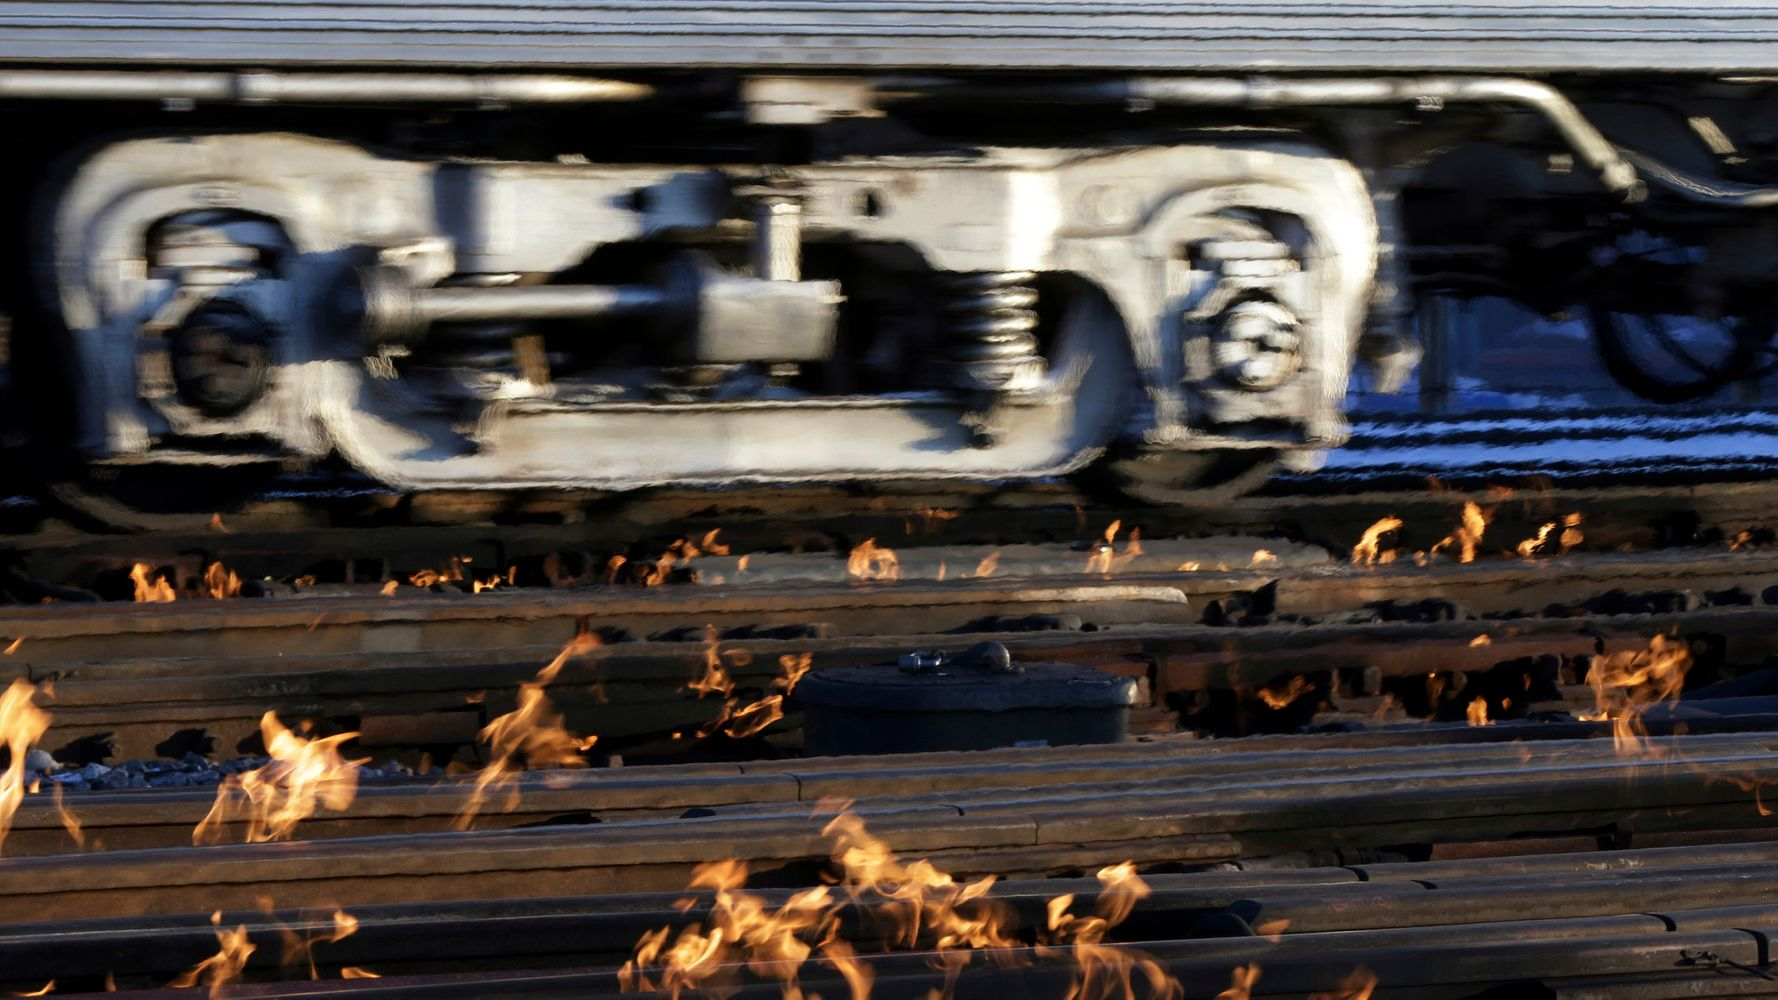 A Song Of Ice And Fire: Chicago Lights Up Train Tracks To Battle